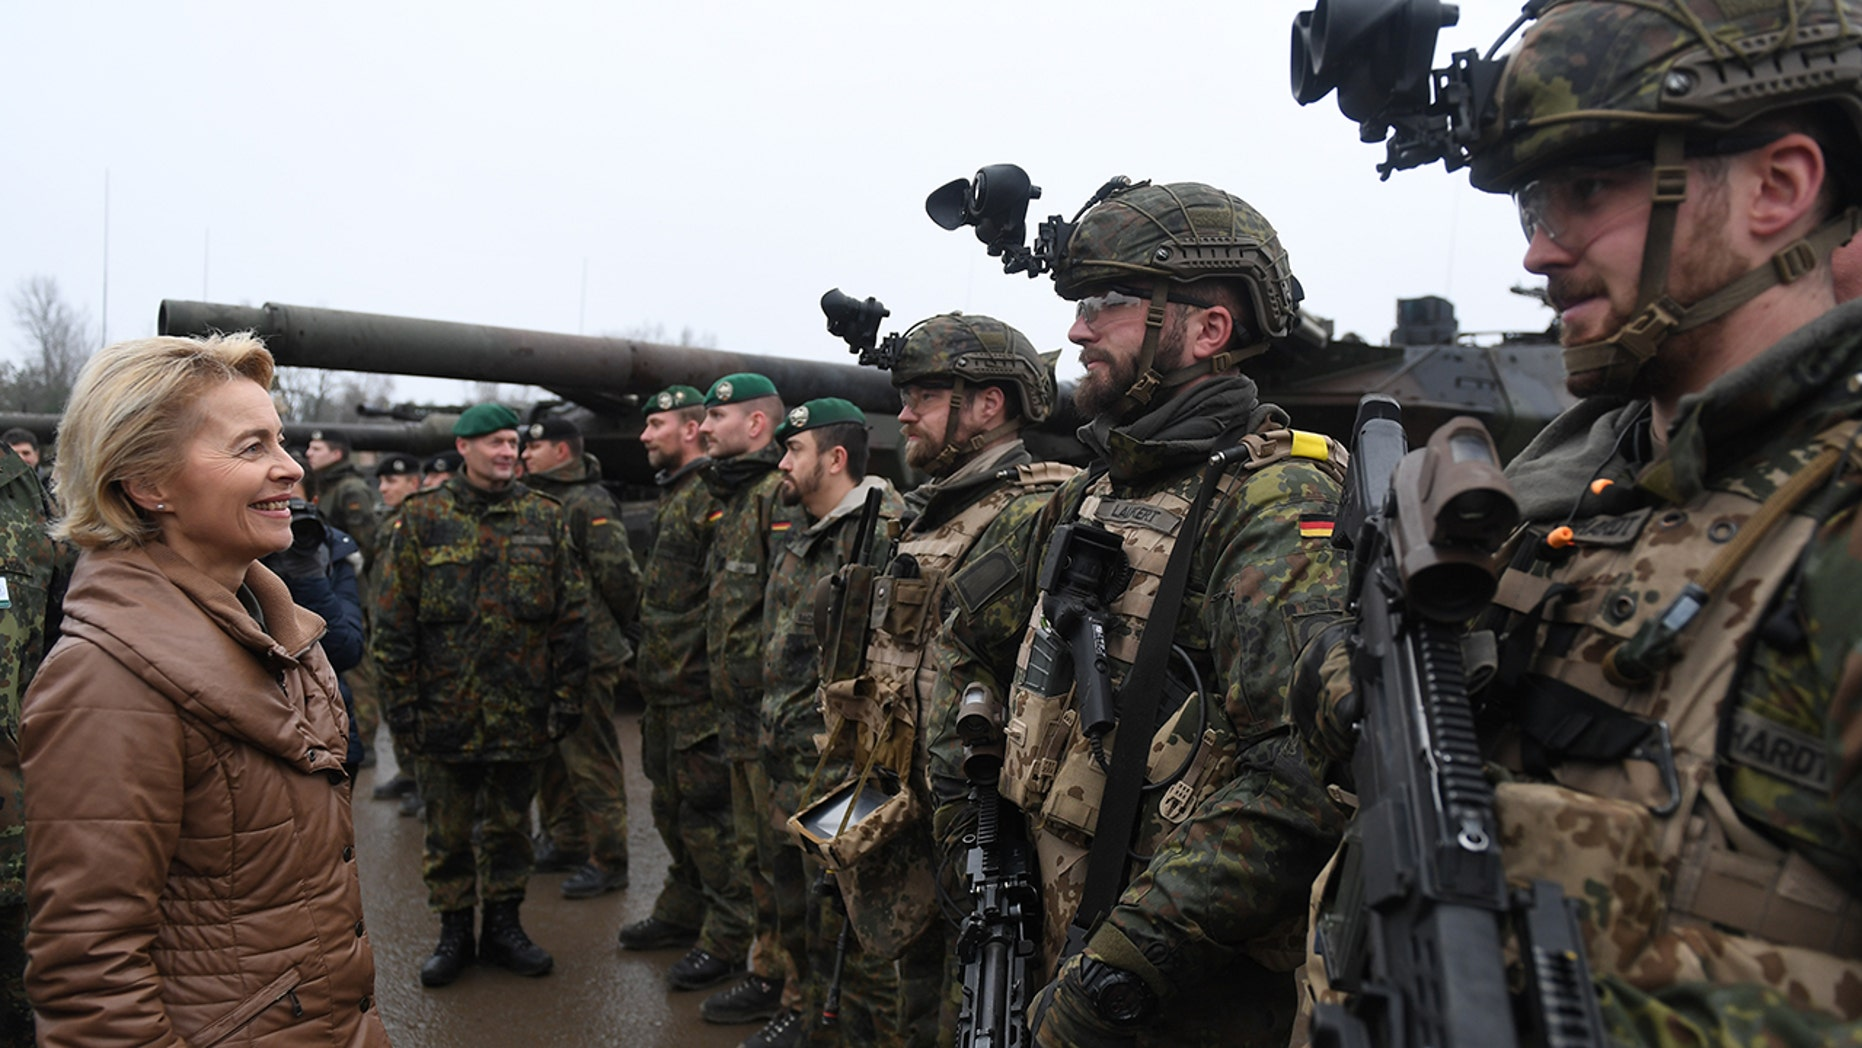 German Defense Minister Ursula von der Leyen chats with soldiers of the Bundeswehr during a visit to a Bundeswehr infantry training facility on December 6, 2018 in Munster, Germany.